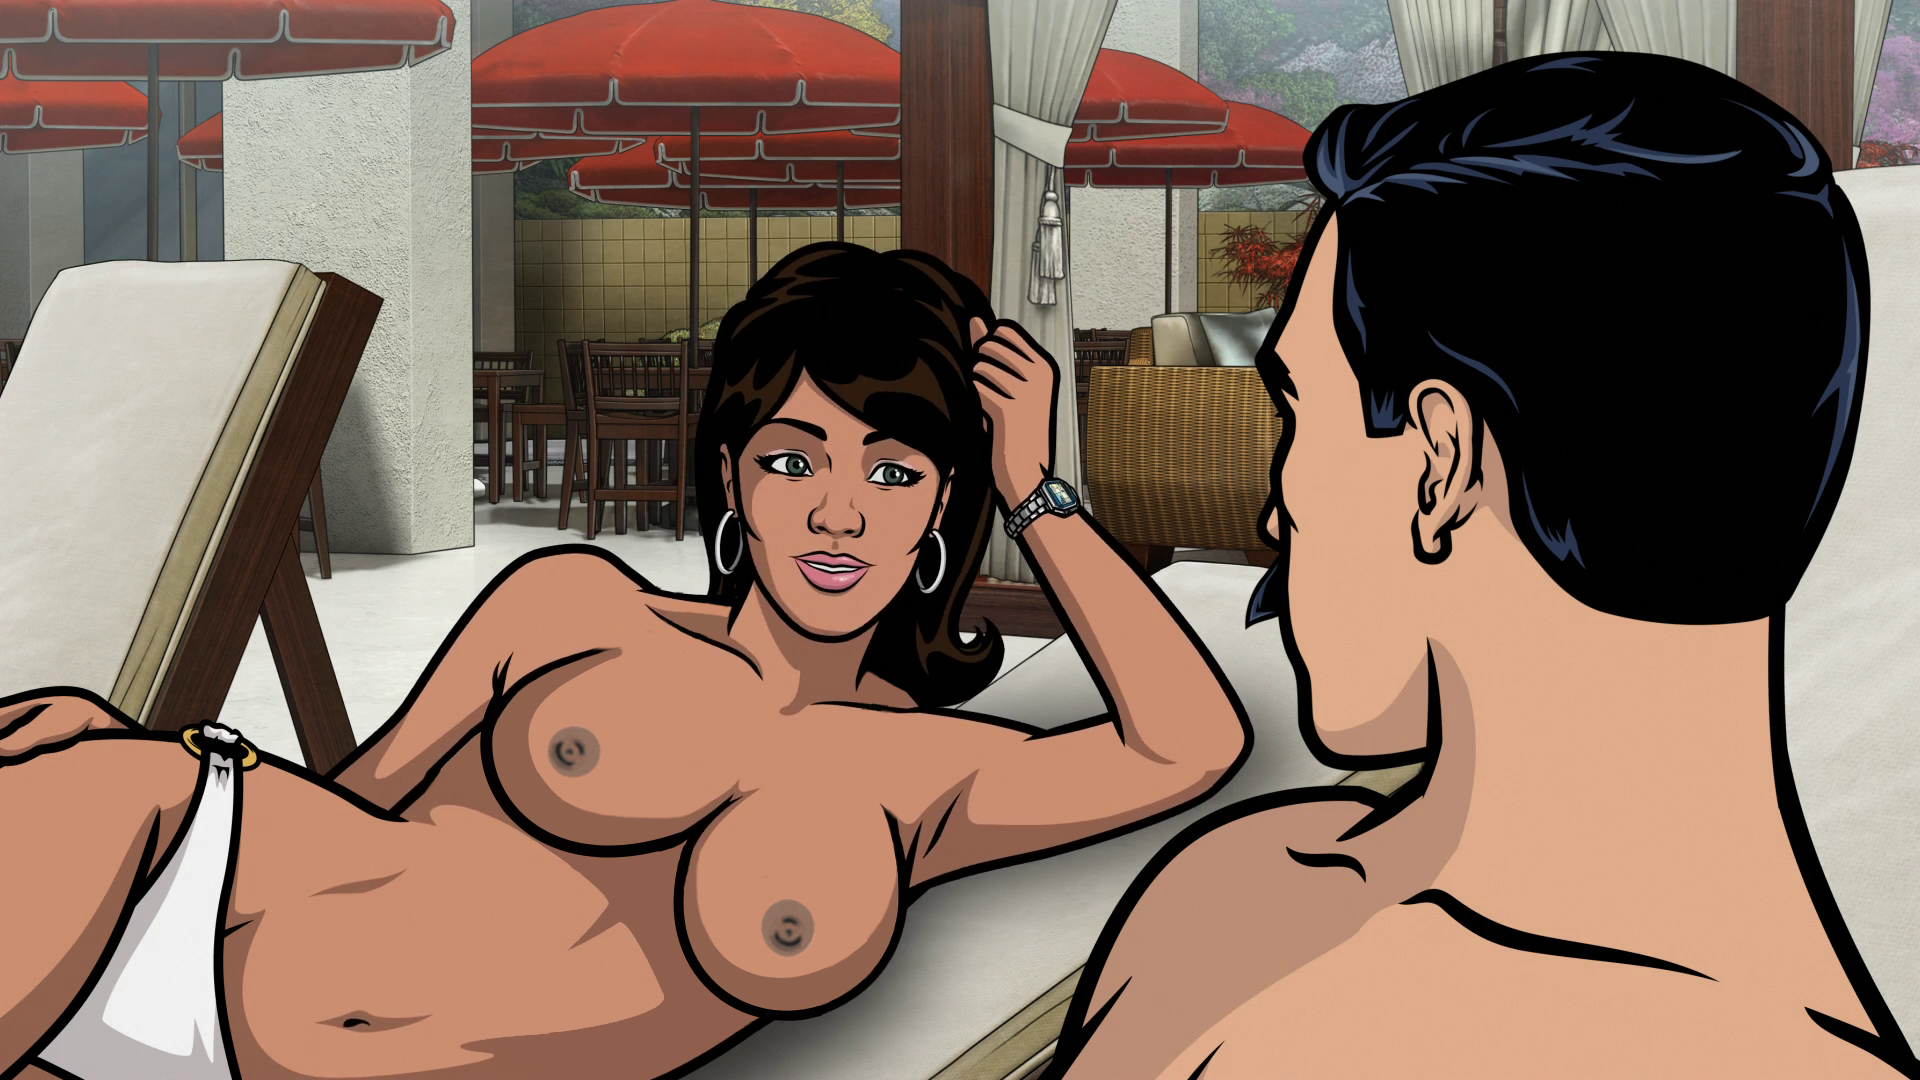 Anka hentai from archer series sexy streaming